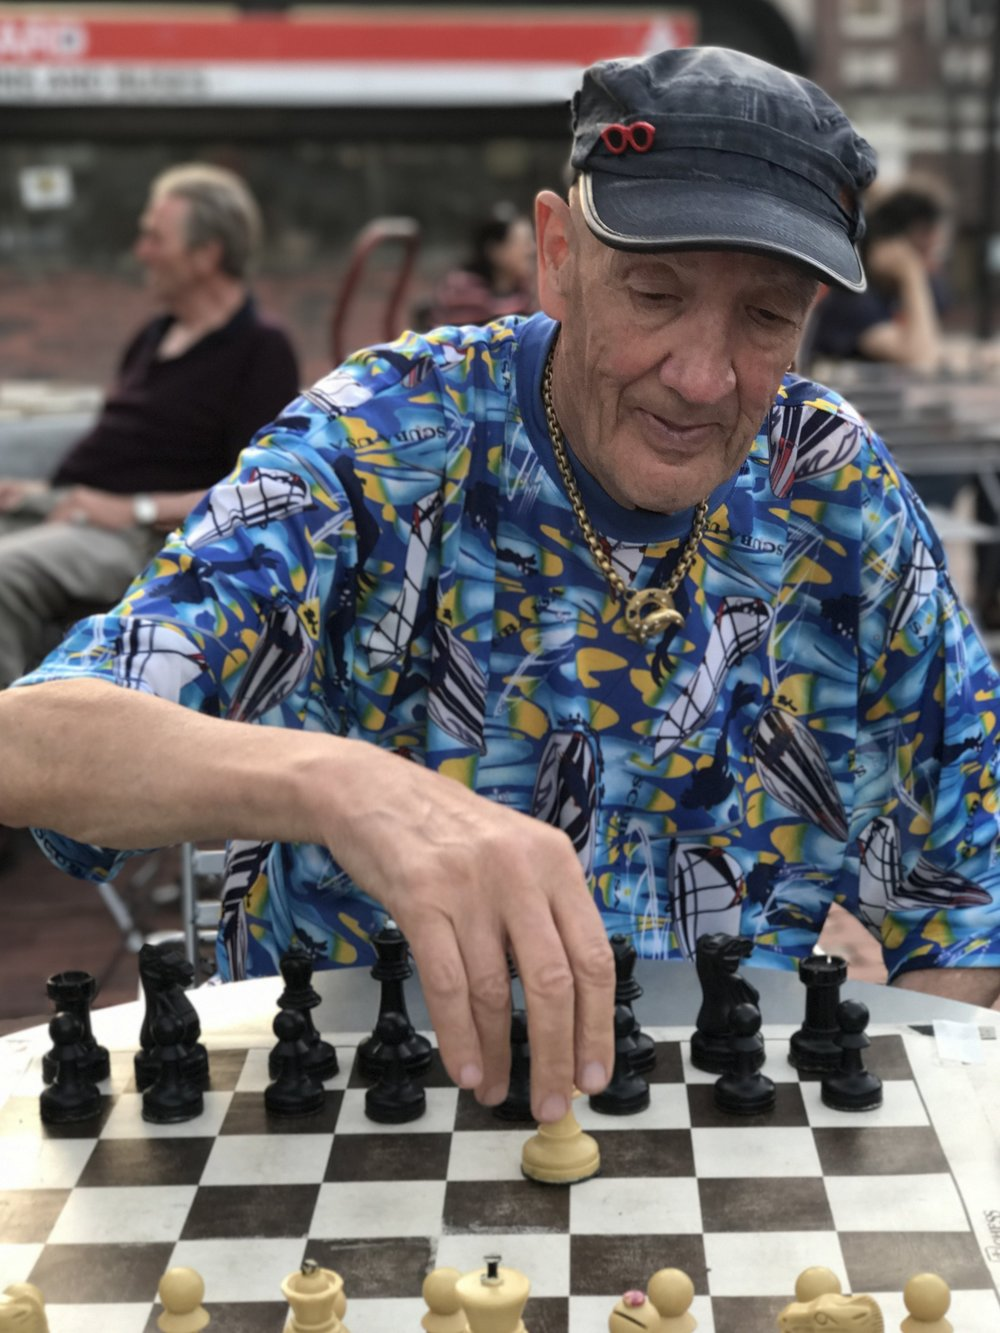 Chess Player in Harvard Square